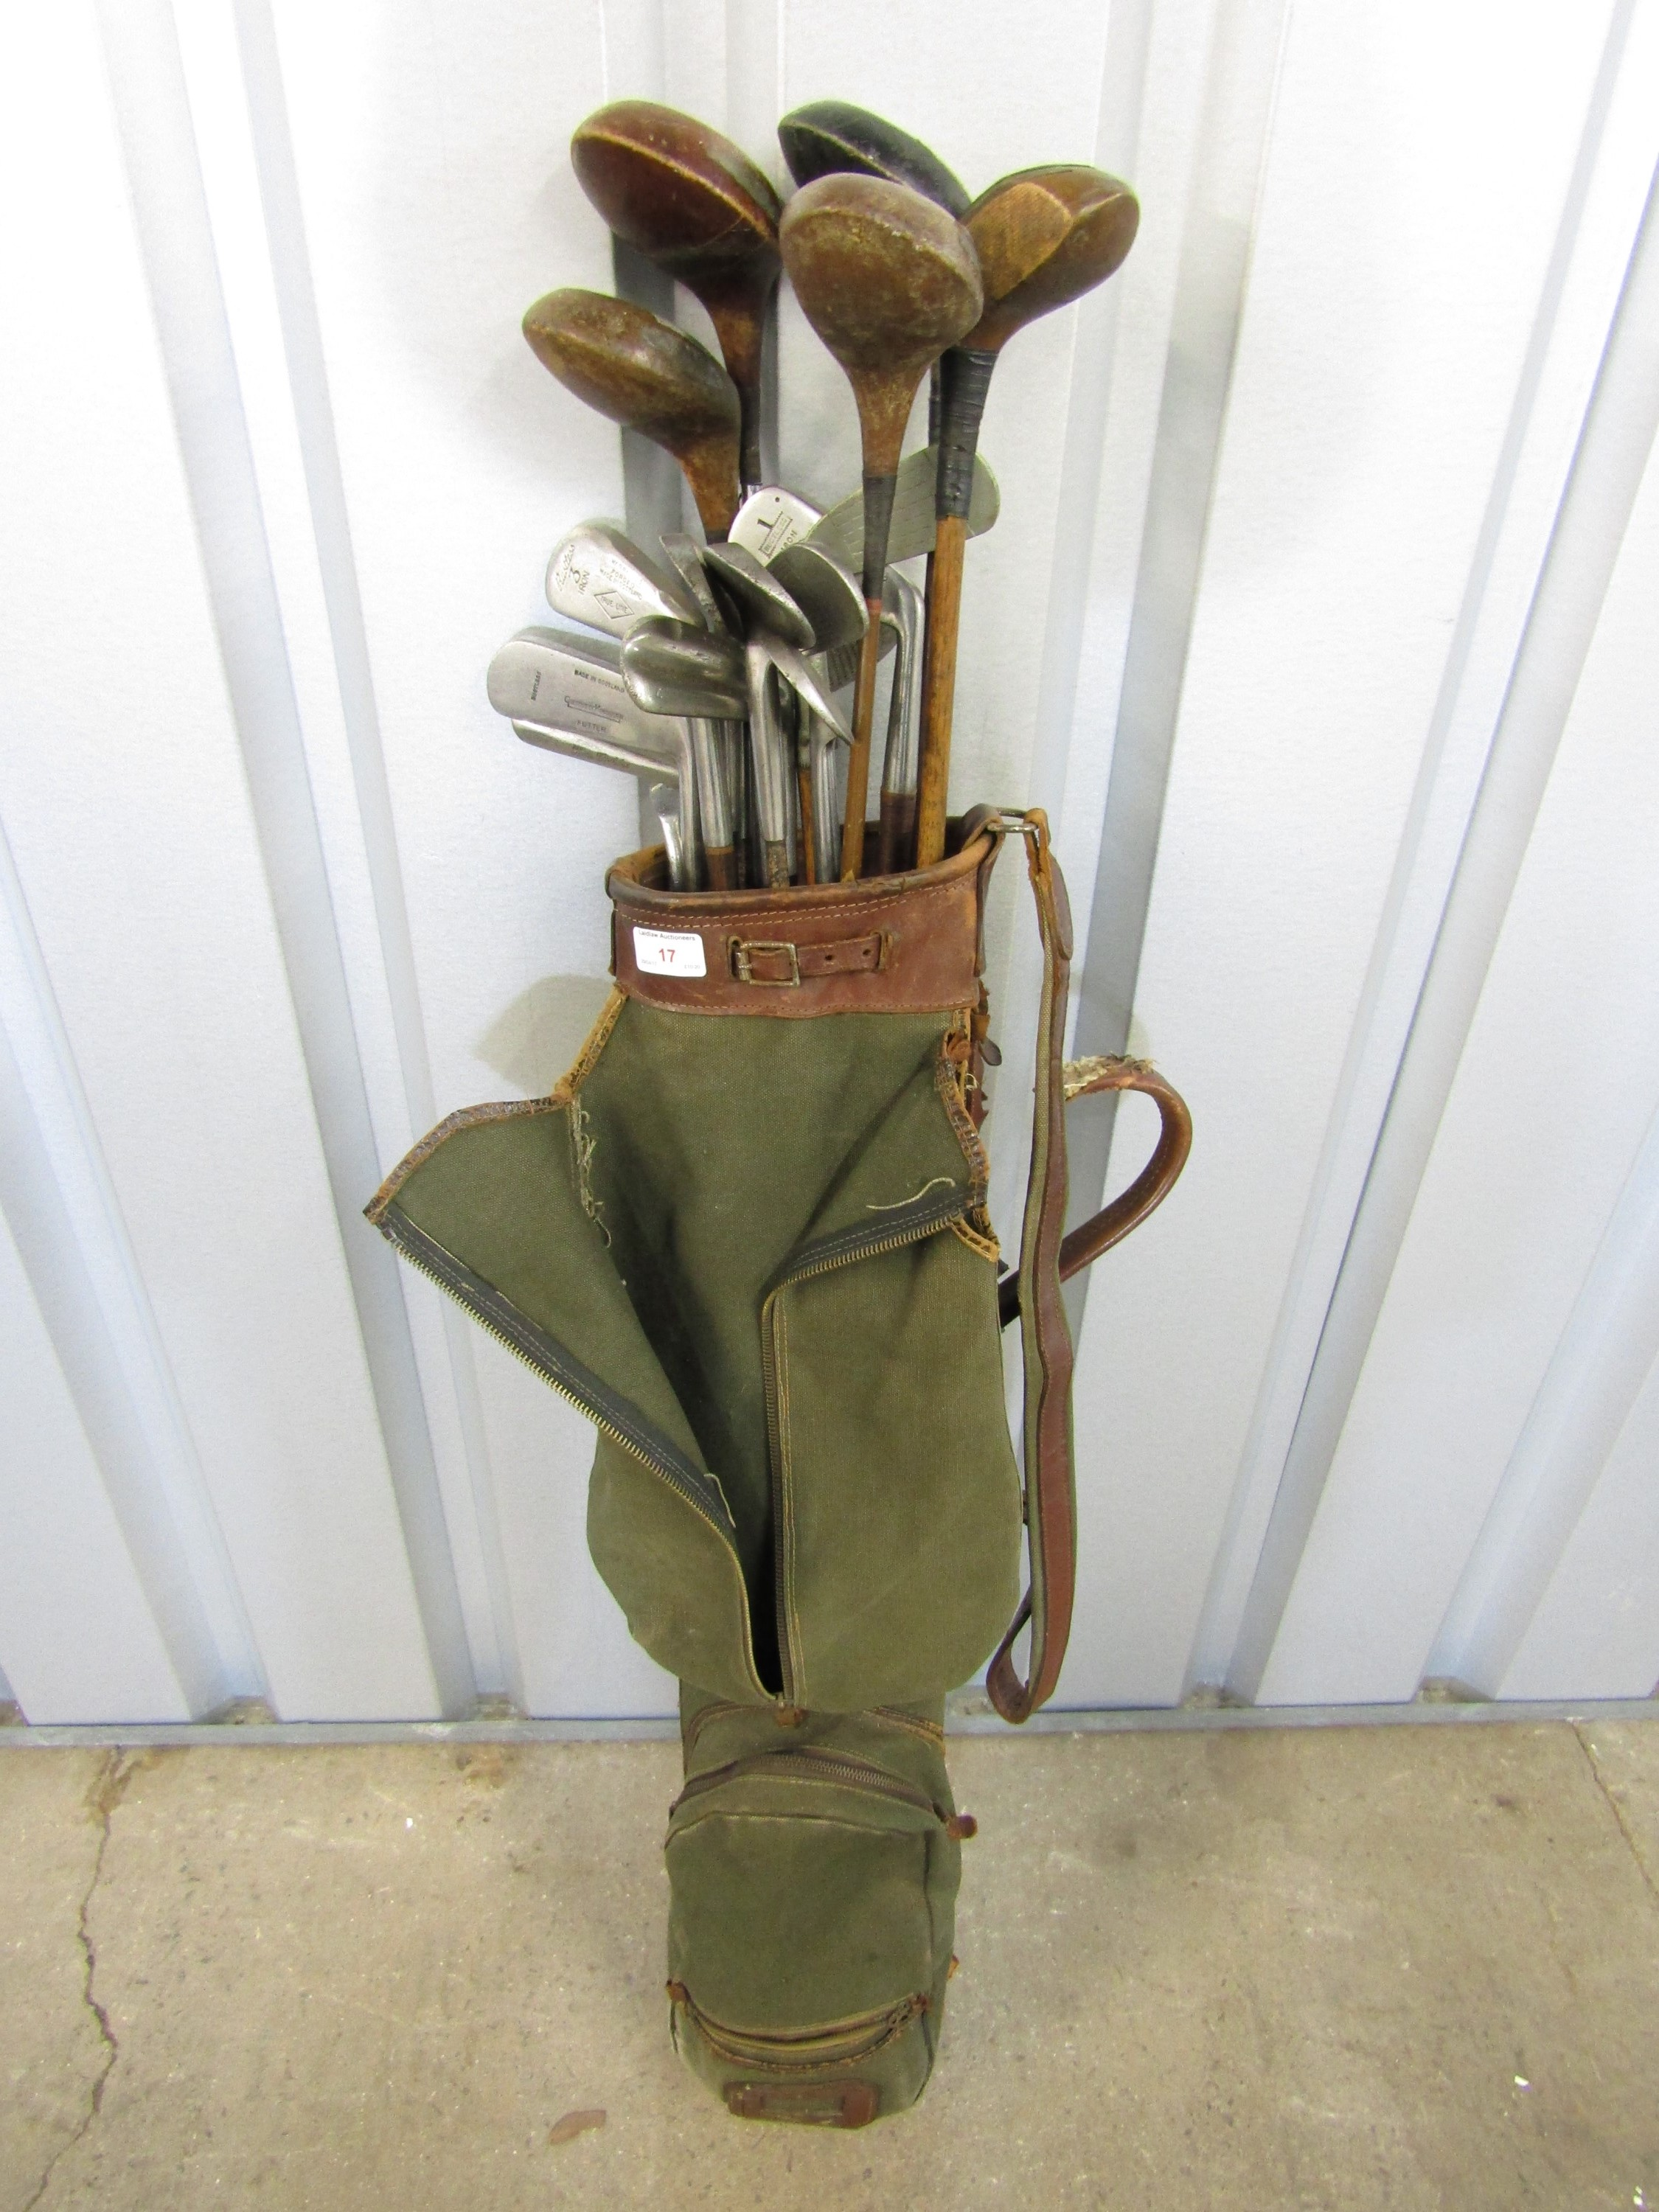 Lot 17 - A vintage golf bag with clubs